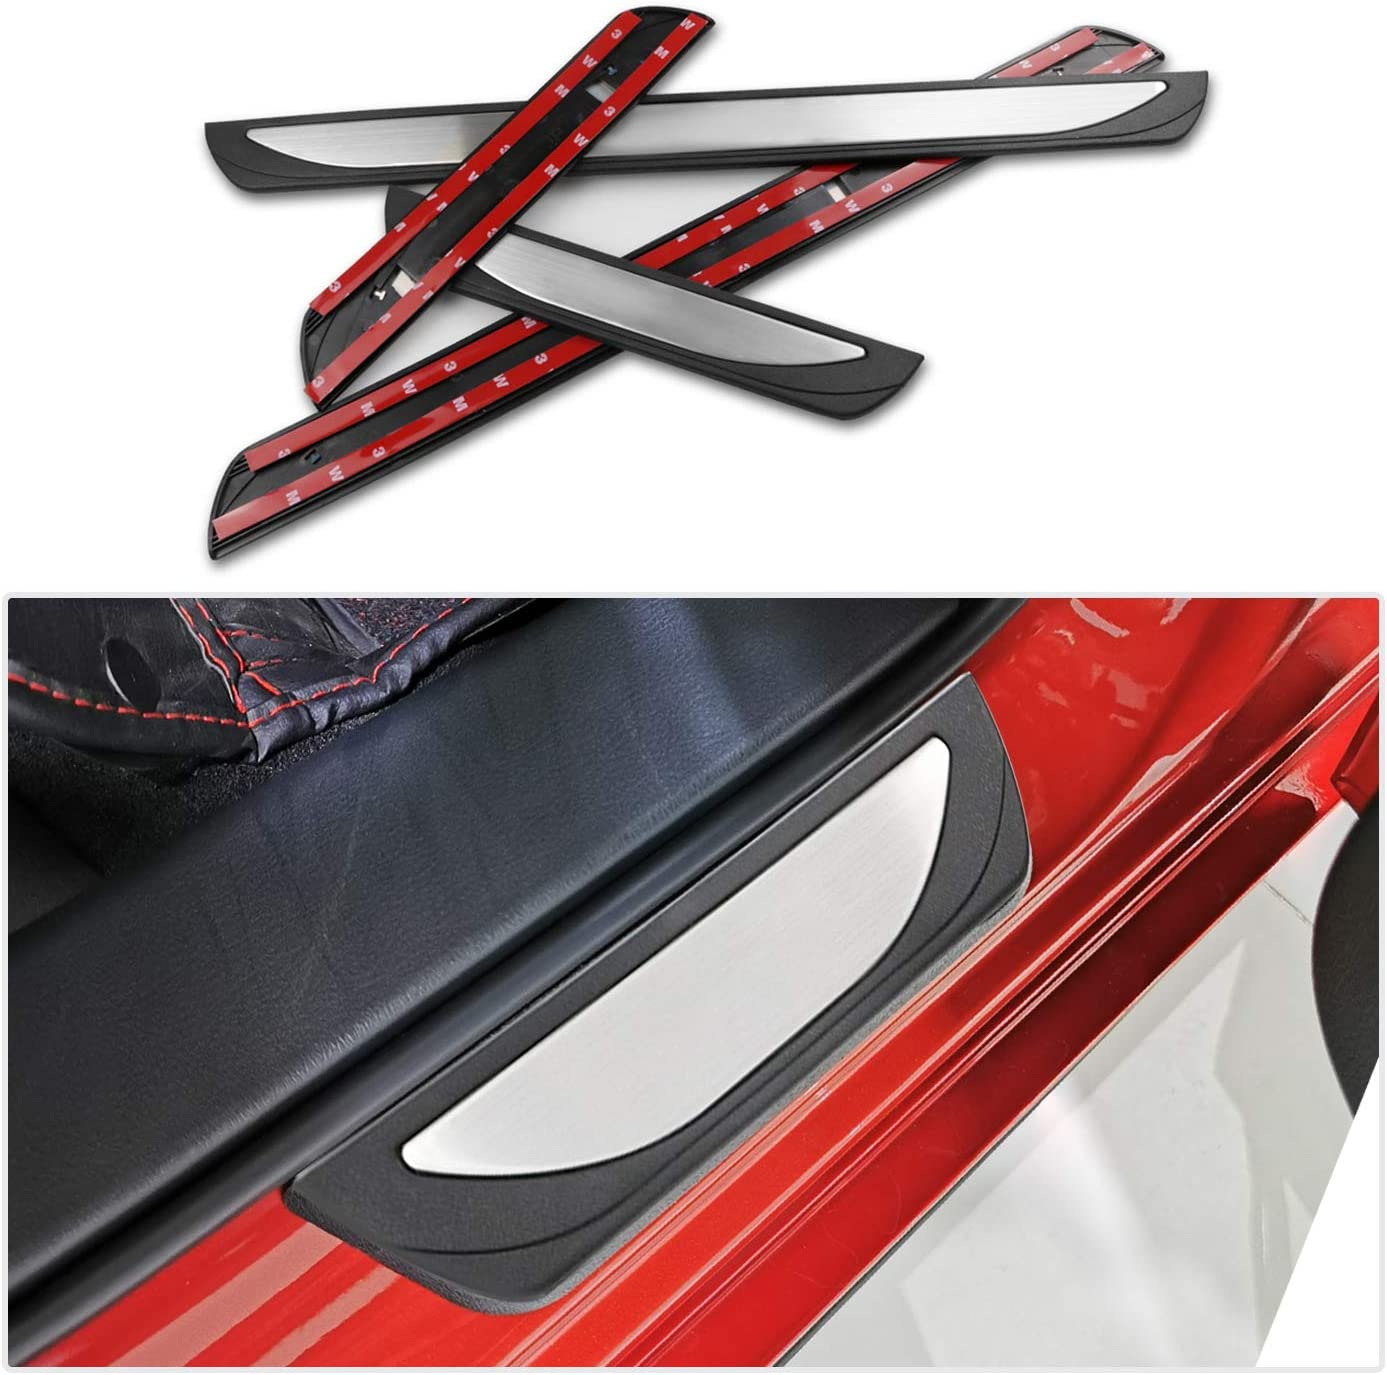 interior bumper protection 4 pieces stainless steel car accessories CDEFG for Qashqai J11 SUV 2014-2019 door sill cover